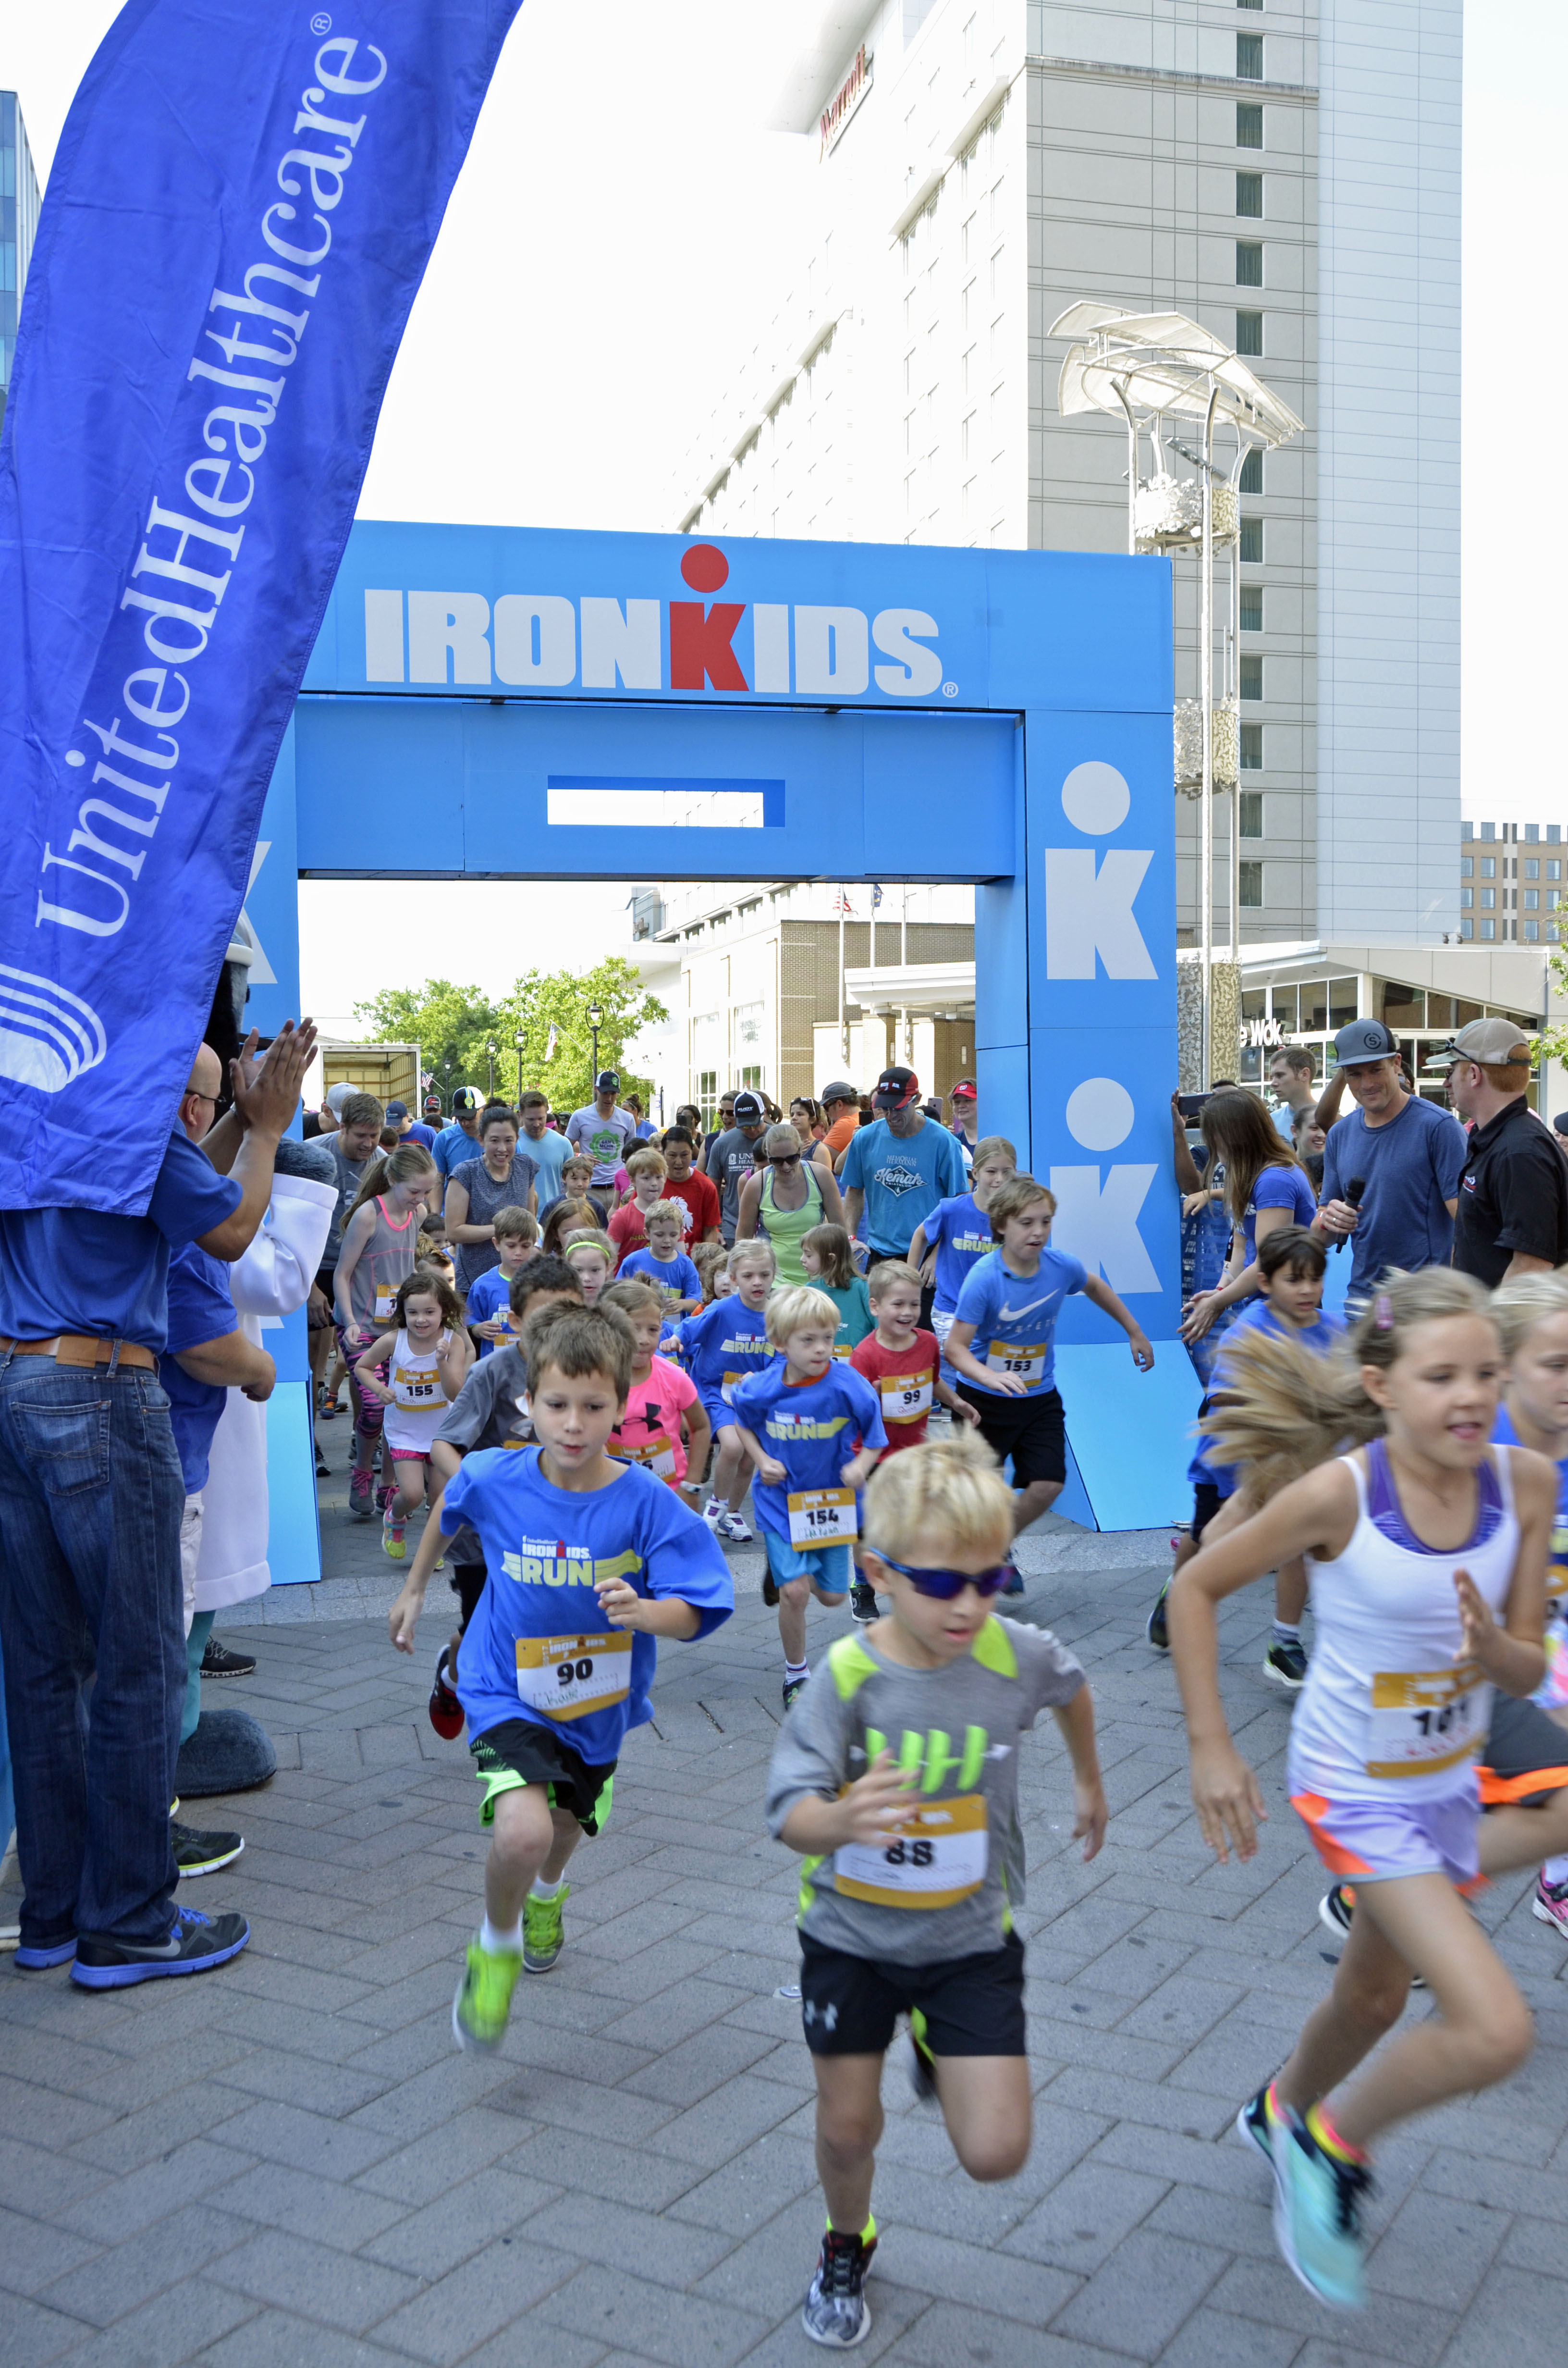 More than 160 kids crossed the finish line at the UnitedHealthcare IRONKIDS Raleigh Fun Run today at Raleigh Marriott City Center. UnitedHealthcare mascot Dr. Health E. Hound helped Derek K. Harris Jr. of UnitedHealthcare and state Rep. Duane Hall kick off the fun run. This is the sixth year UnitedHealthcare is sponsoring IRONKIDS races in the United States. (Photo credit: Marc Kawanishi)